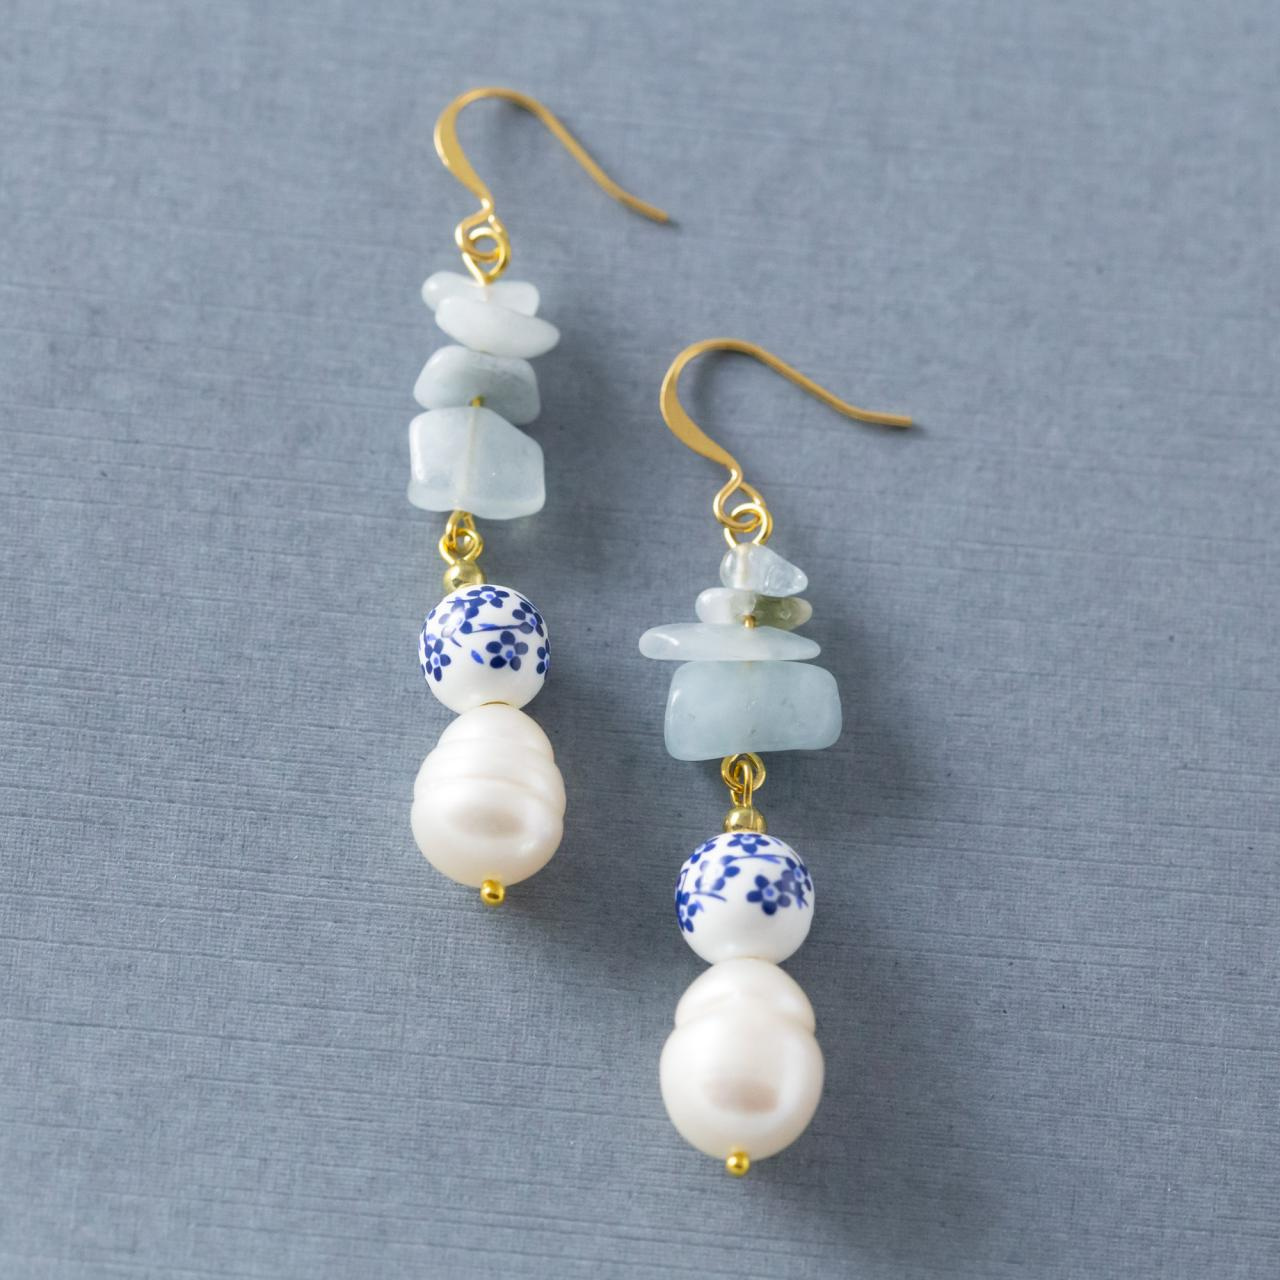 Blue Flower Earrings, Freshwater Pearl Earrings, Aquamarine Earrings, Aquamarine Jewelry